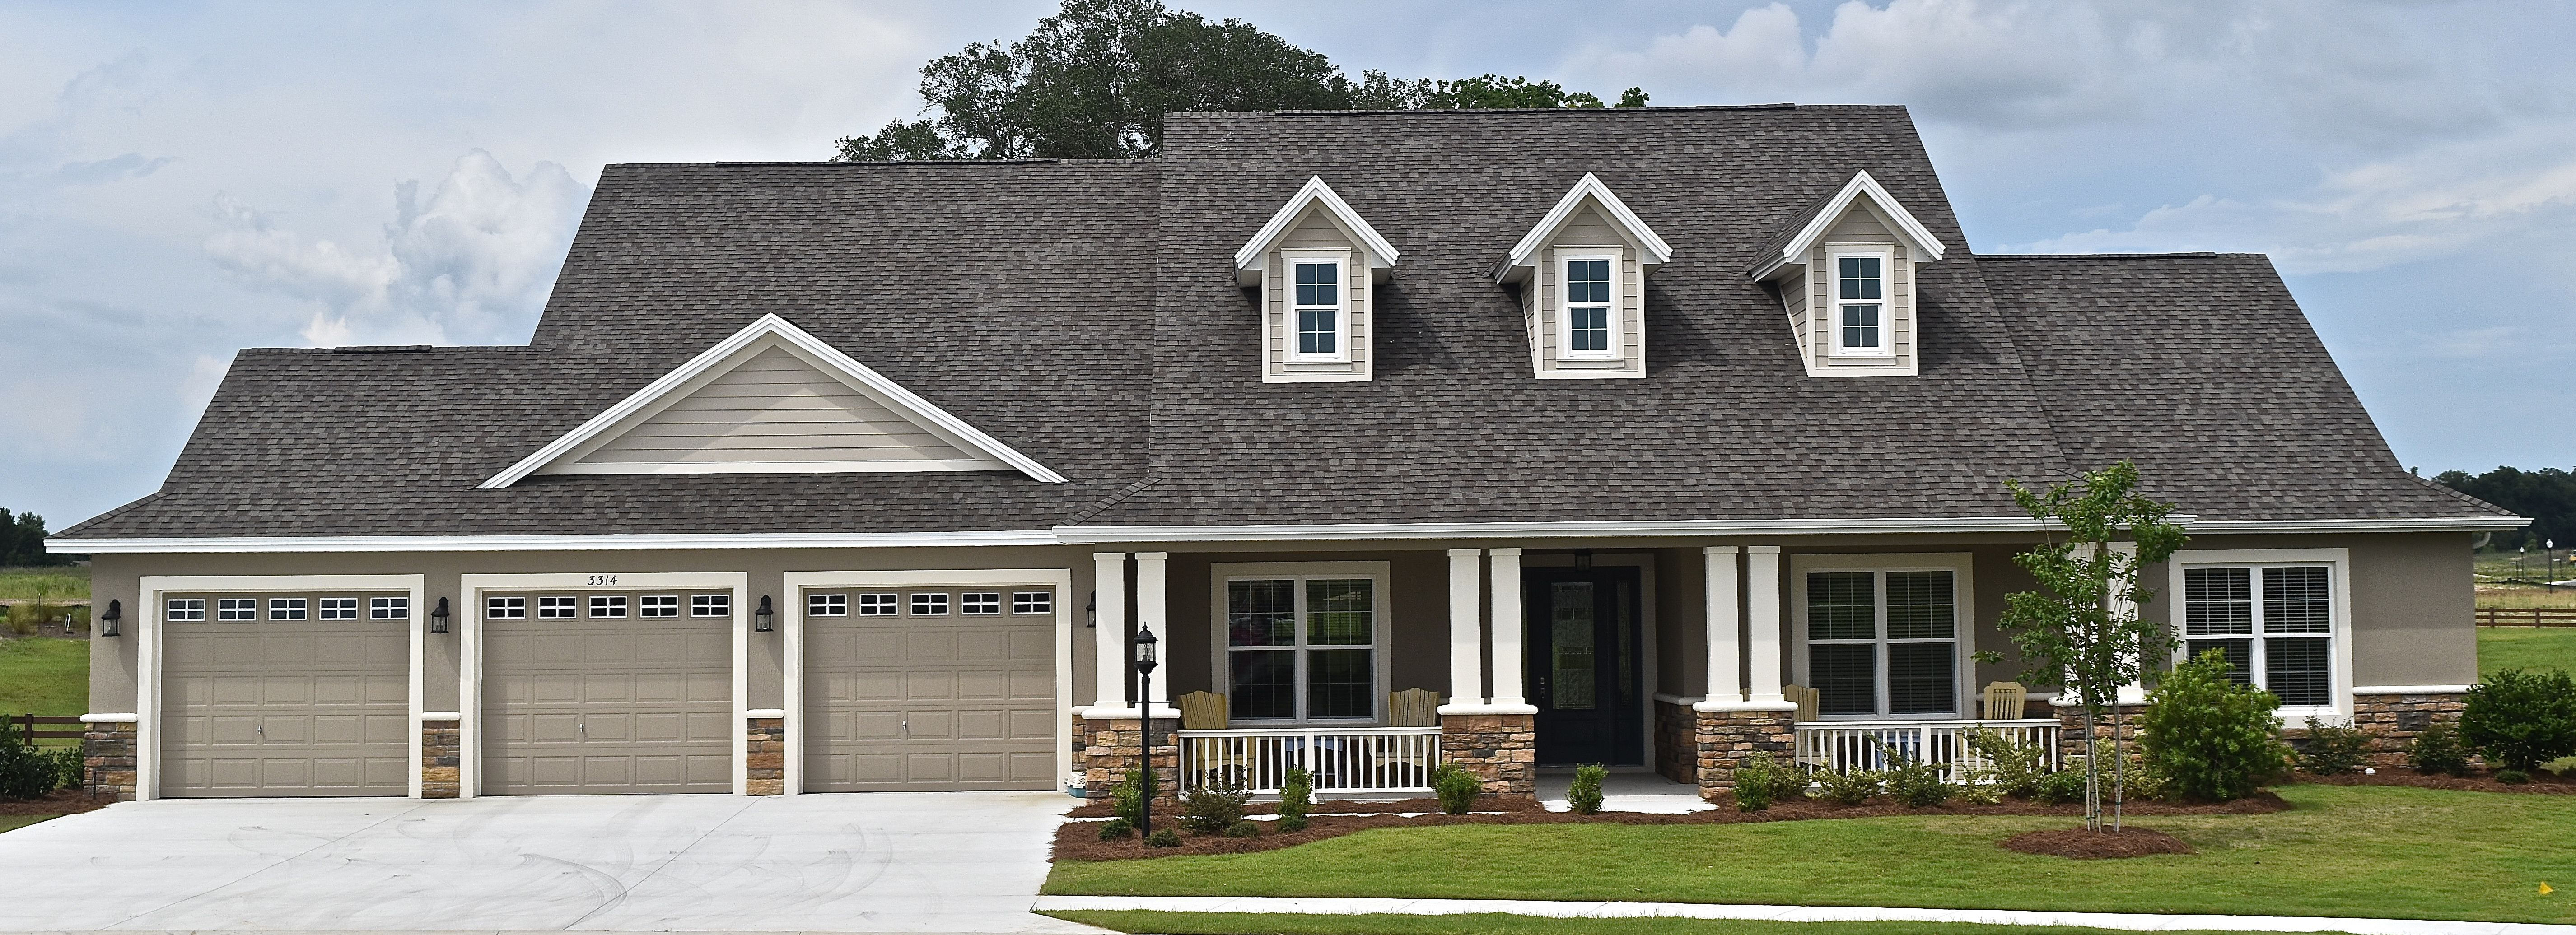 Best Weathered Wood Shingles Google Search Curb Appeal 400 x 300